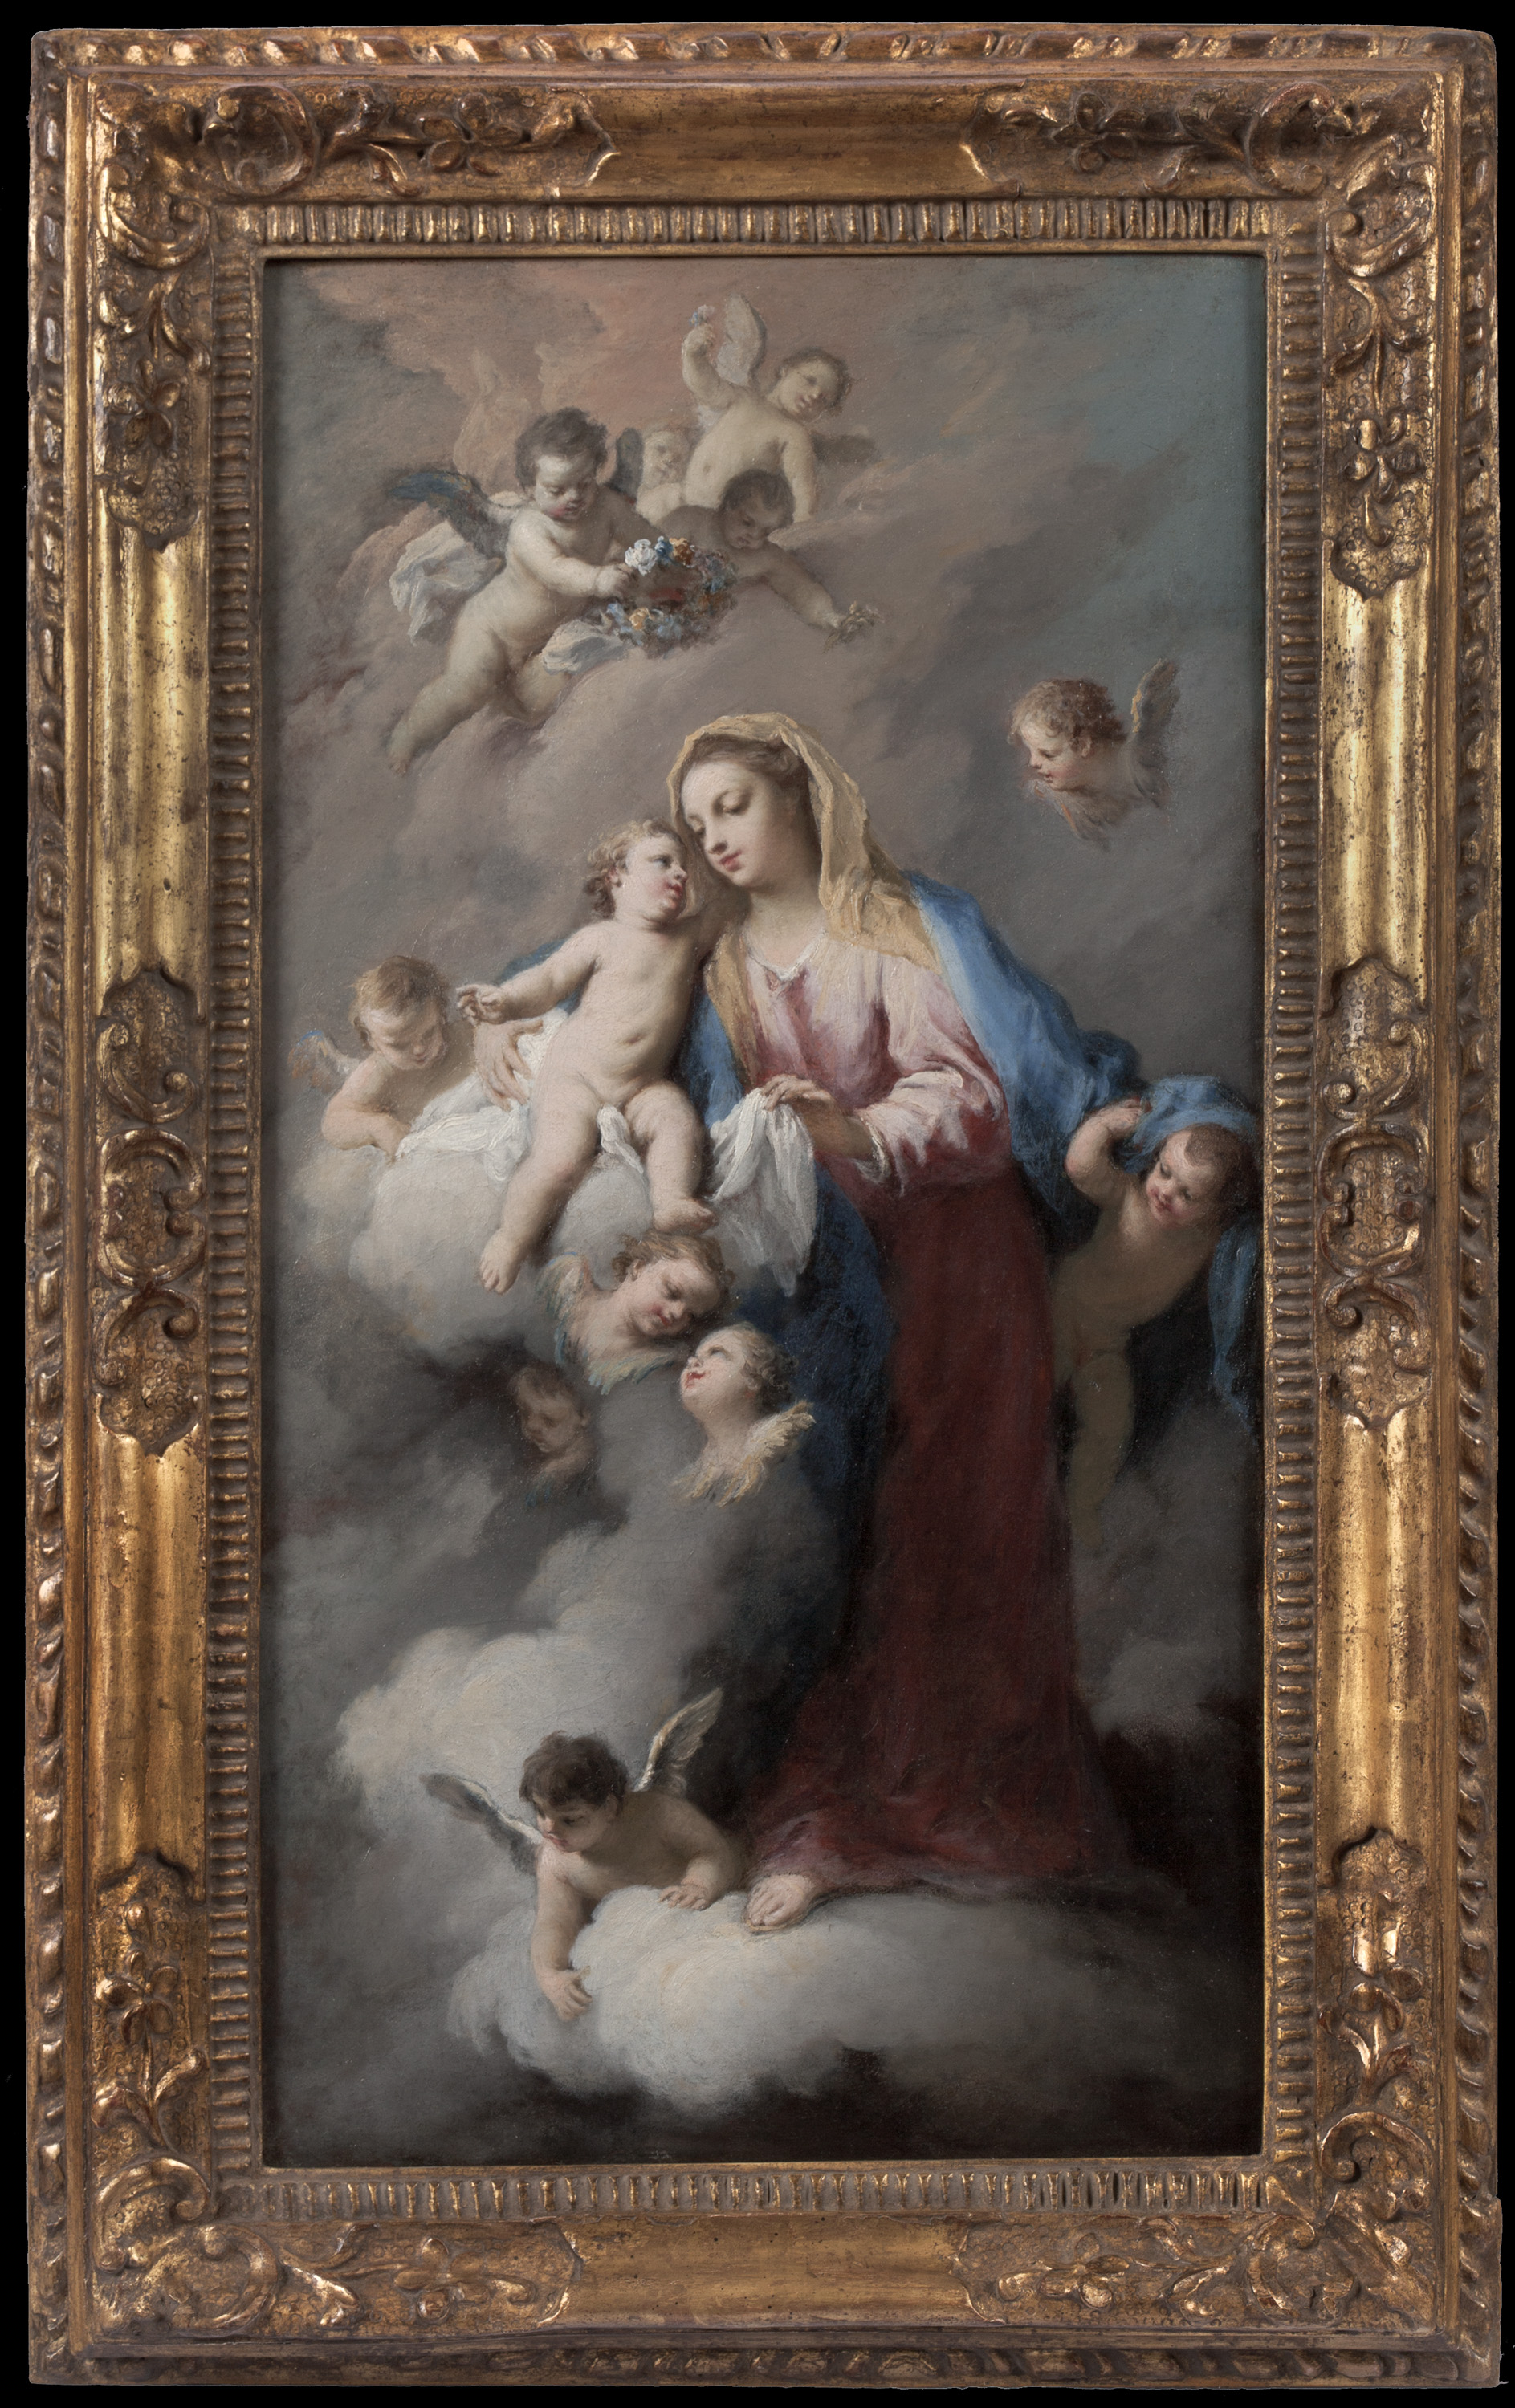 JACOPO AMIGONI   (Italian, ca. 1680 - 1752)    Madonna and Child with Angels in the Clouds    Oil on canvas   23 1/4 x 12 1/2 inches  (59 x 31.7 cm)